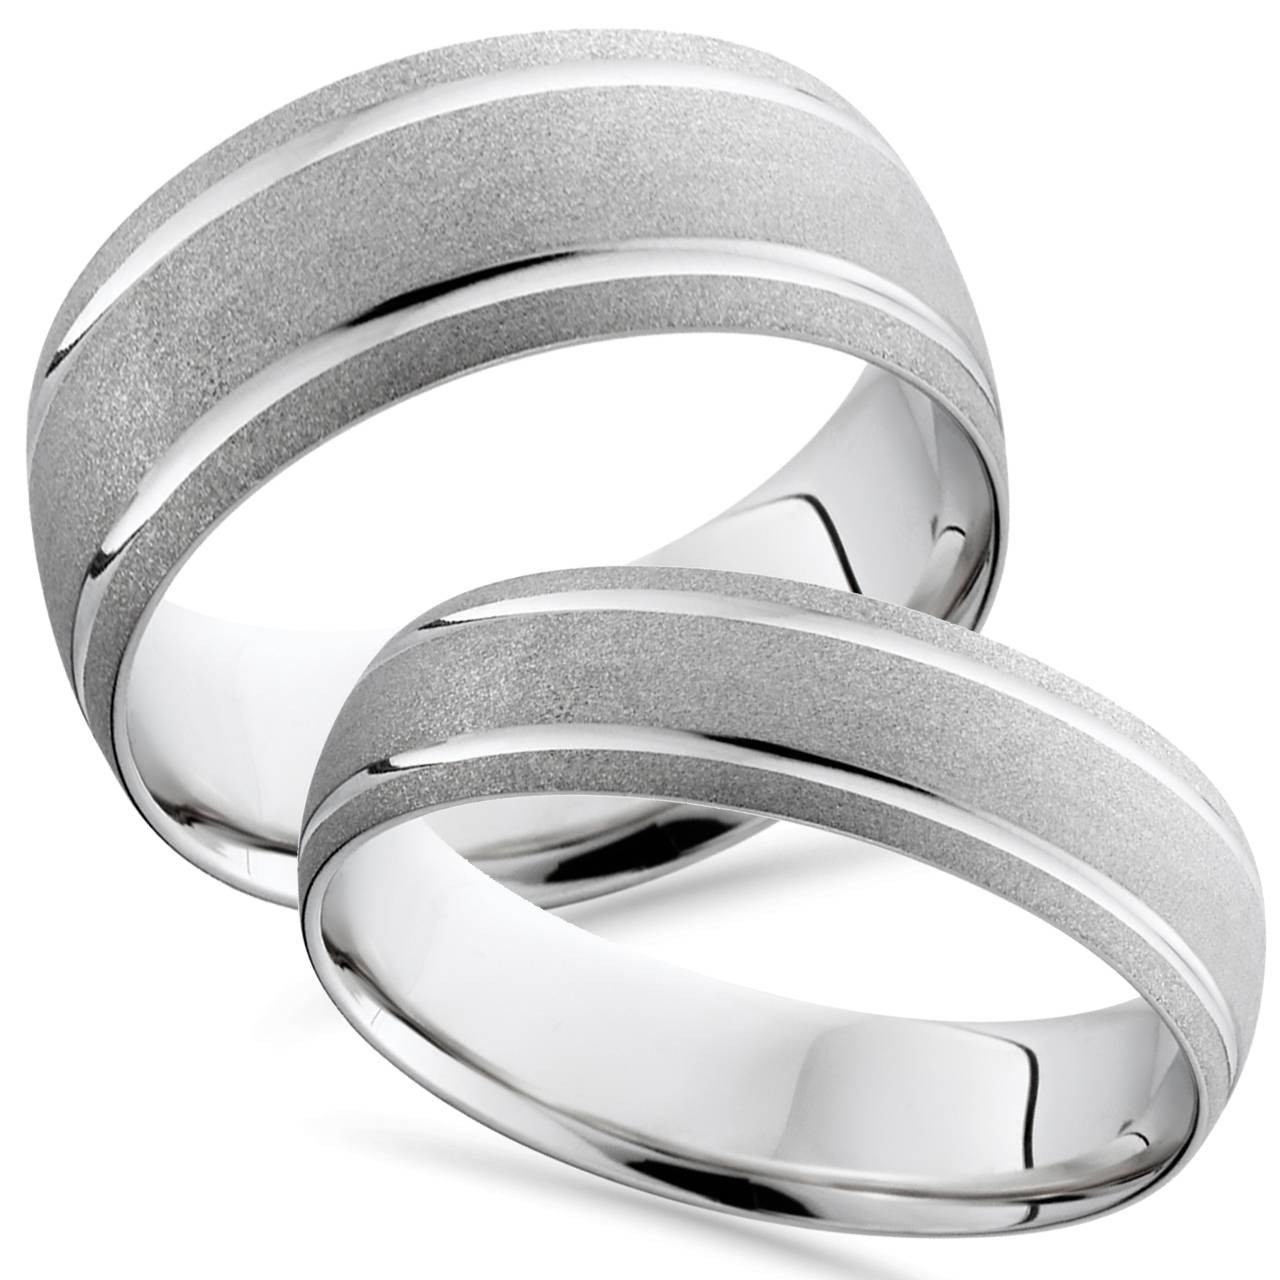 It is a graphic of 33K White Gold Matching His Hers Brushed Comfort Fit Wedding Band